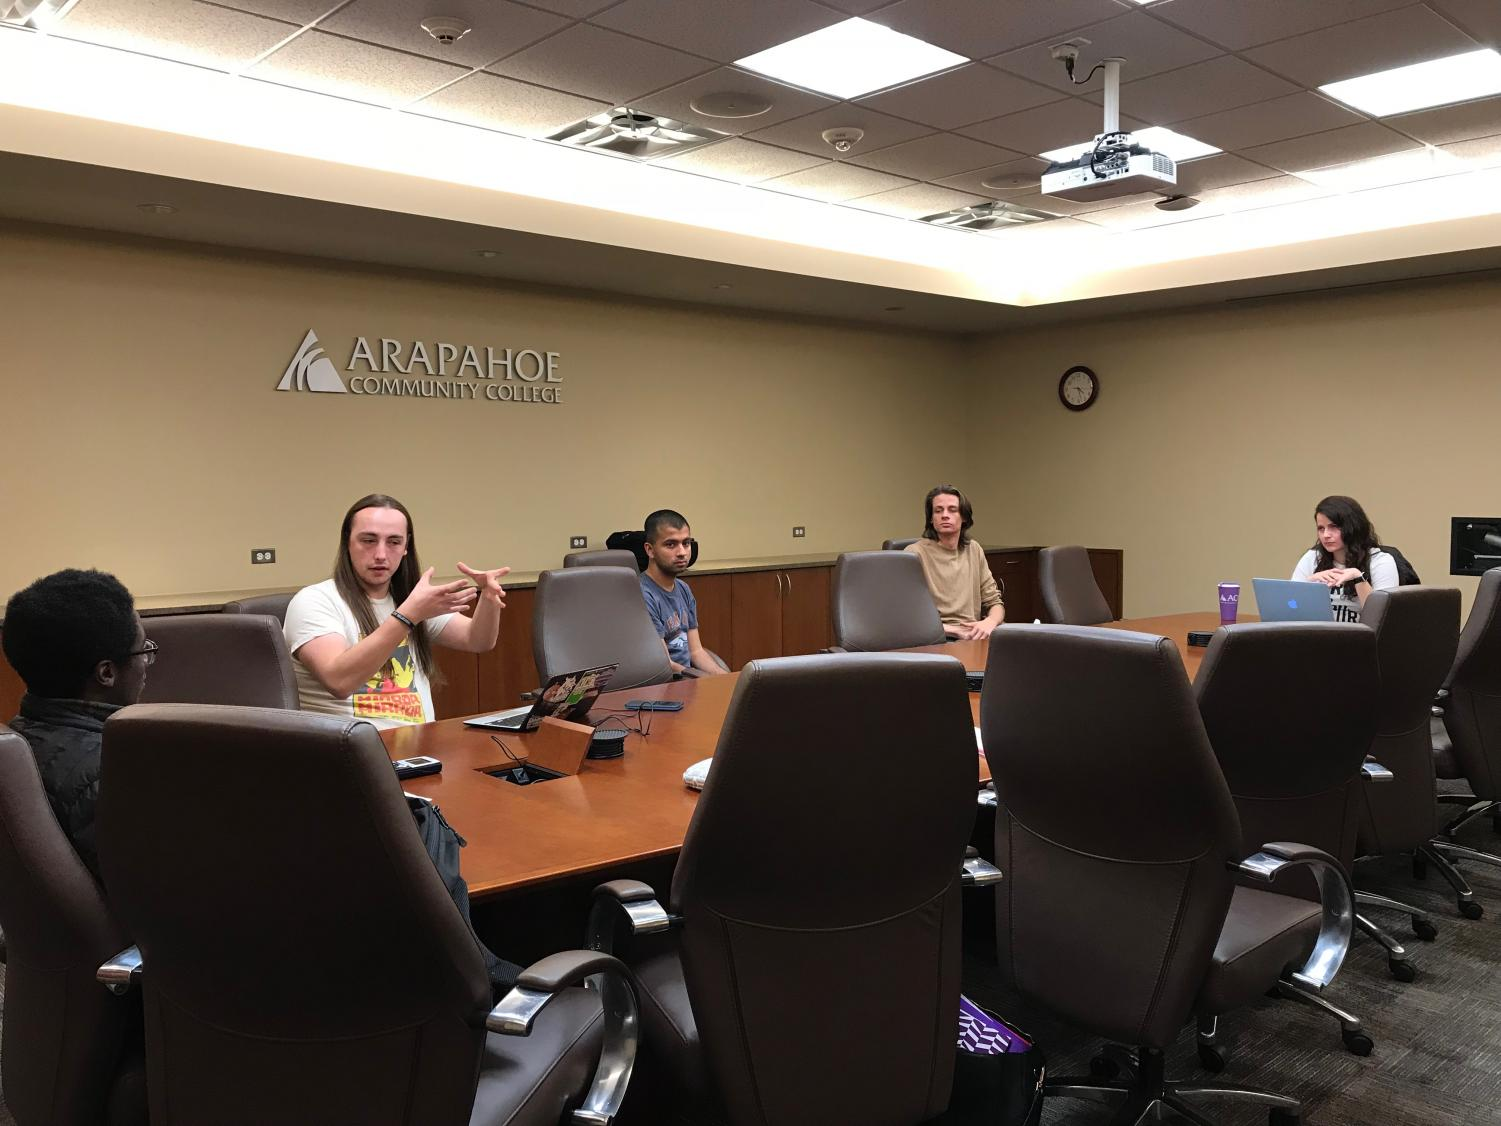 Student Government Associate Board Meeting, Thursday April 26, 2018 at ACC. In the far left, Treasurer John Sackey, to his right, Secretary Scott Bright. In the middle,  Aditya Sriram; middle right, Ryan Holmes, and to the right is President of Student Government, Camila Monroe.